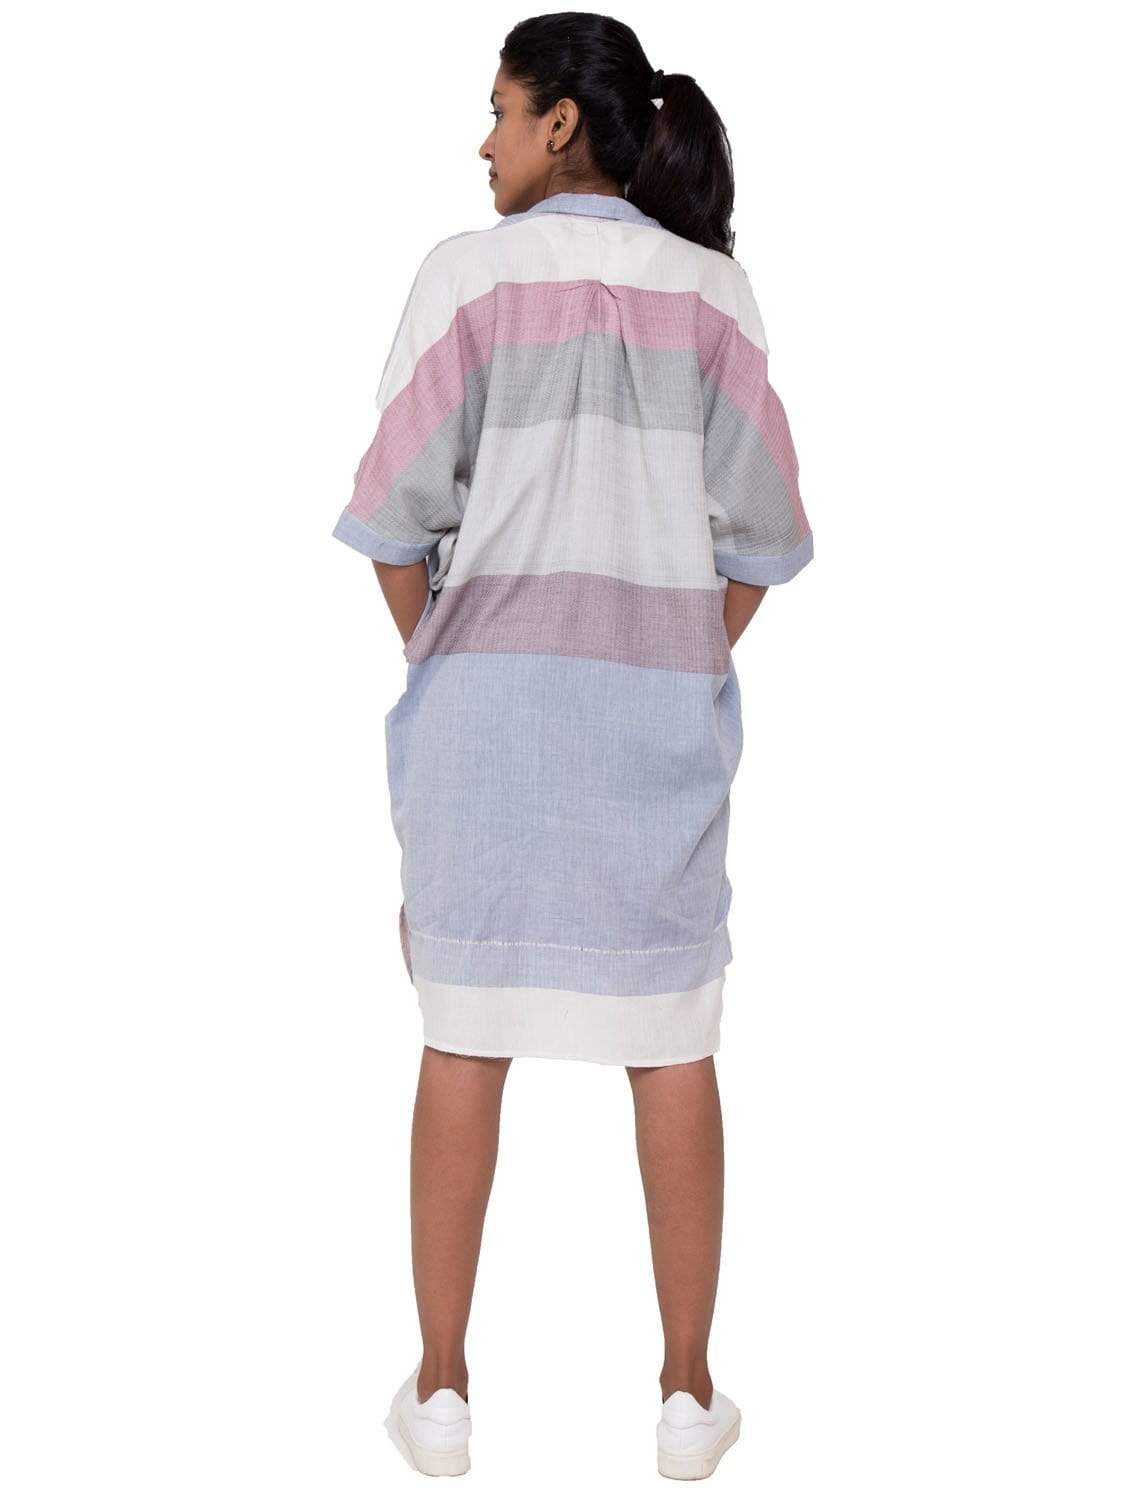 Blue and Red PikaLove Organic Cotton Stripped Shirt Dress UNC-MB-SSD-001